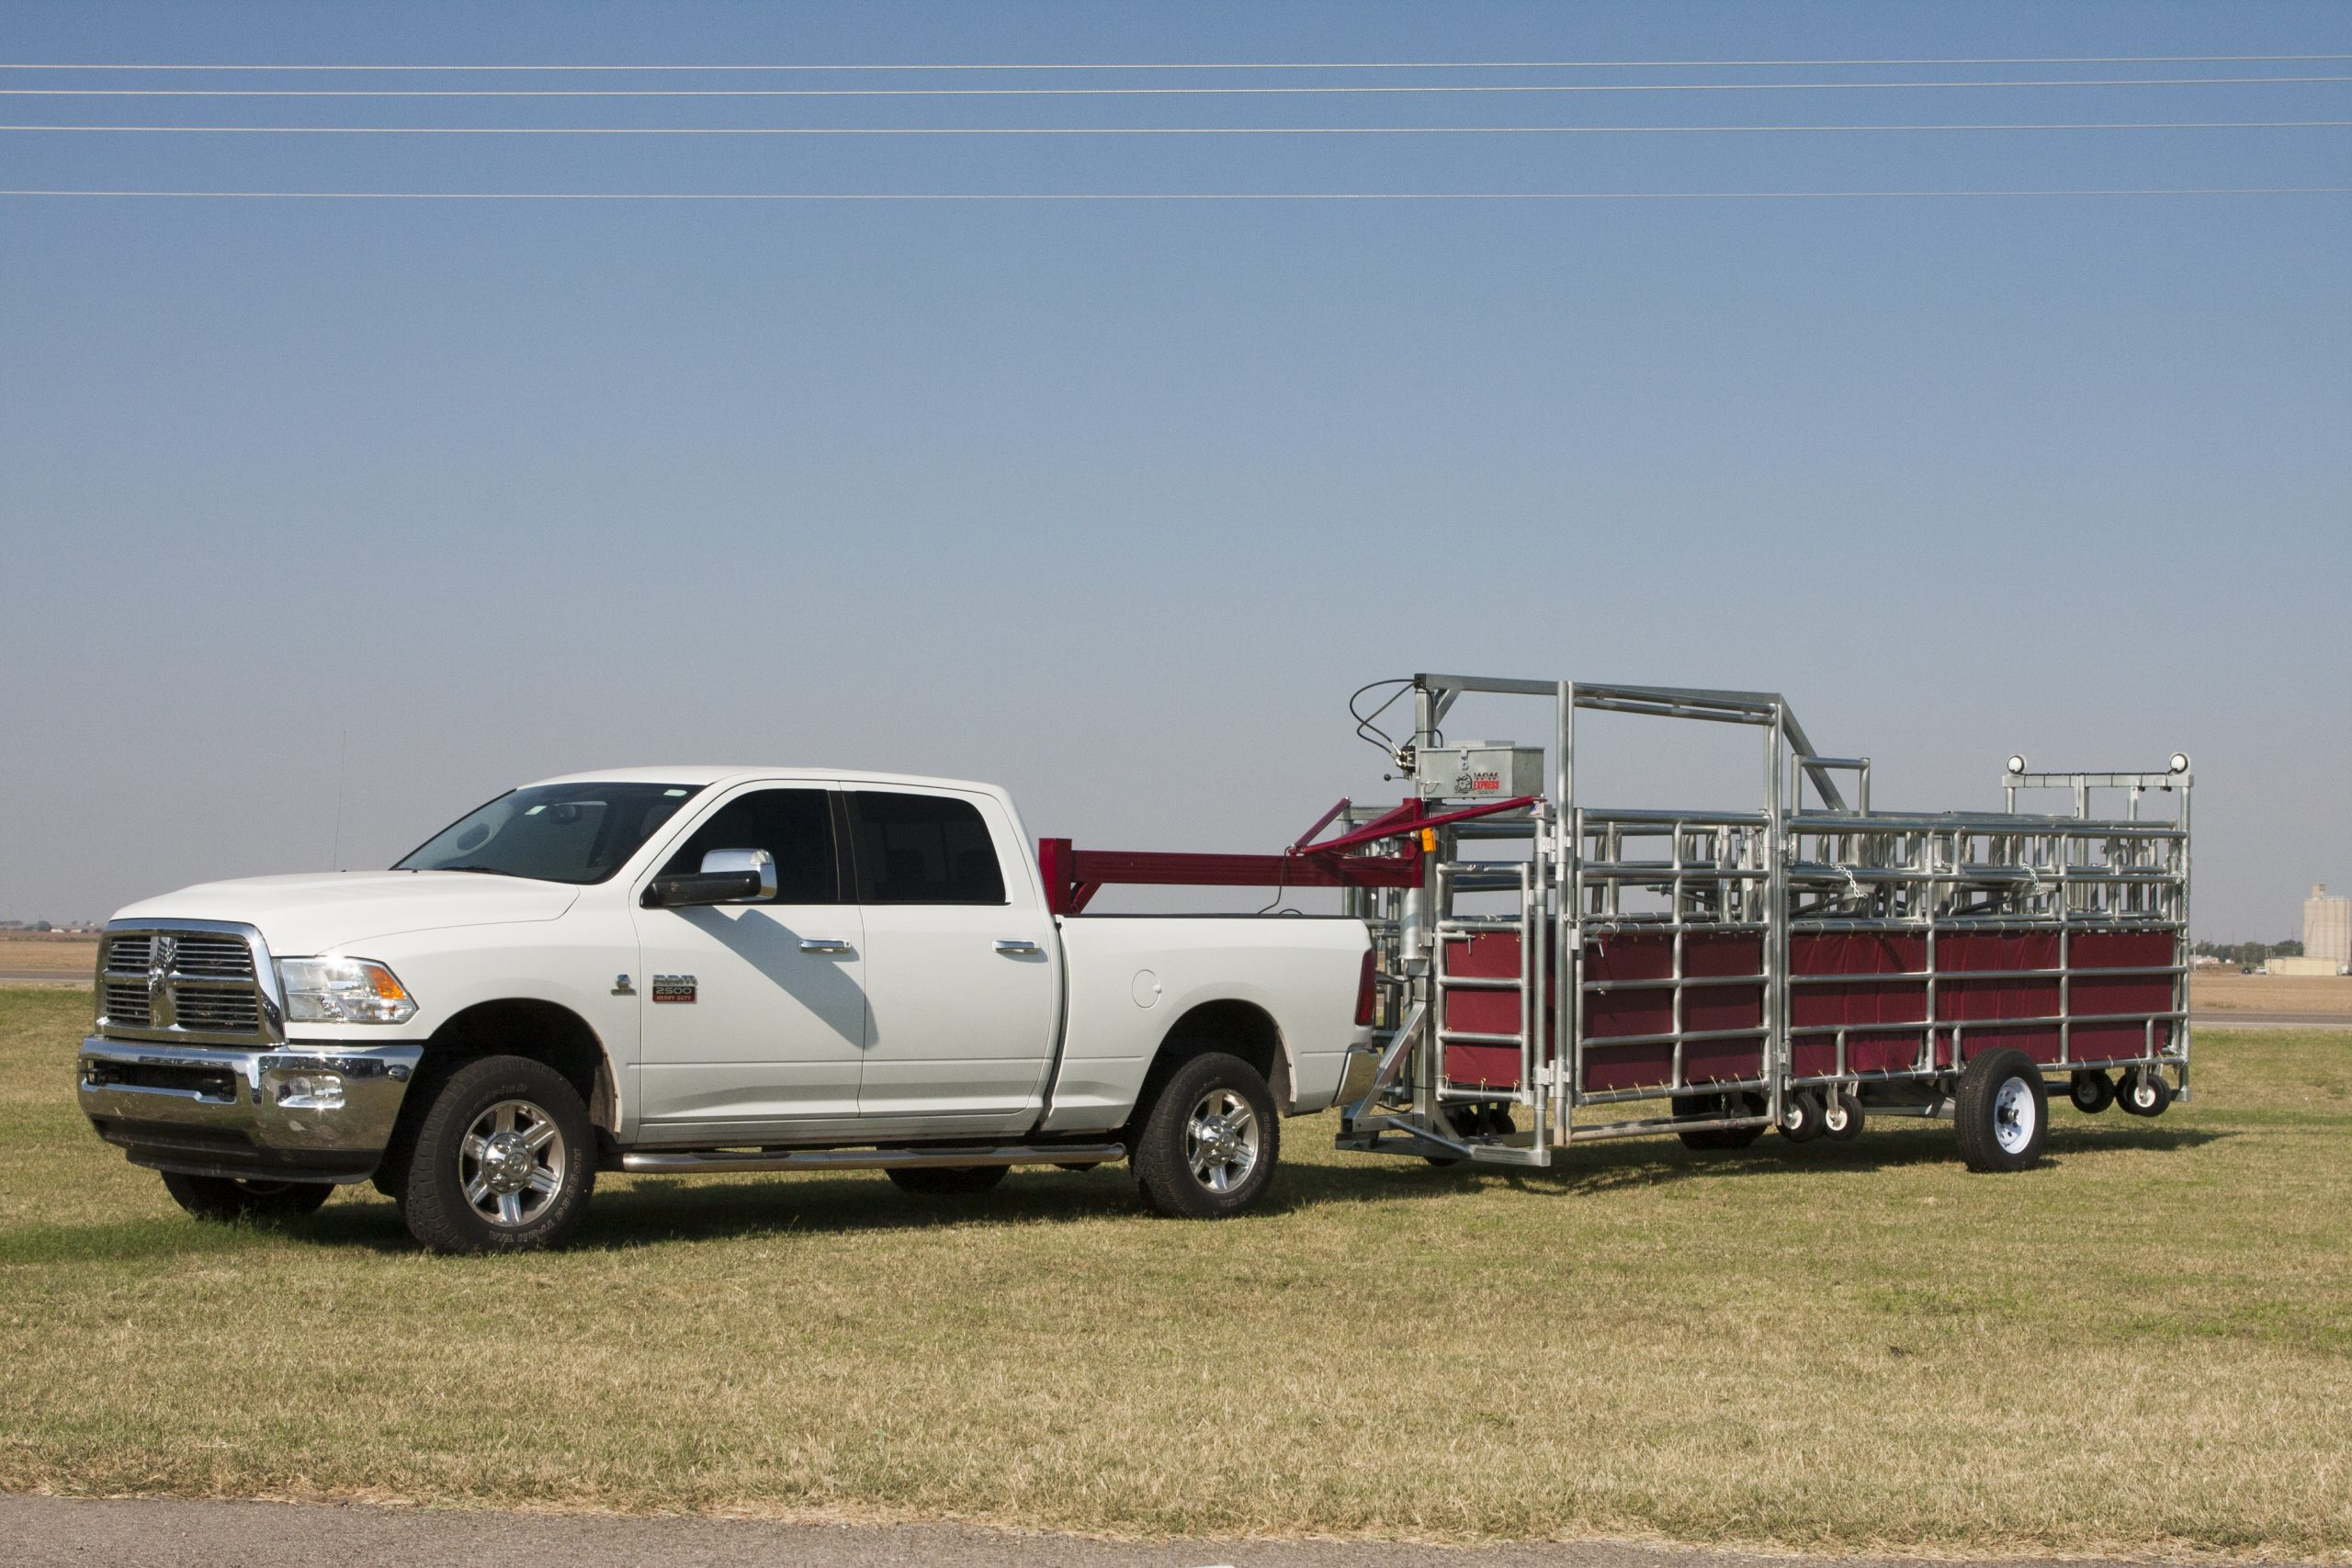 express-portable-corral-in-tow